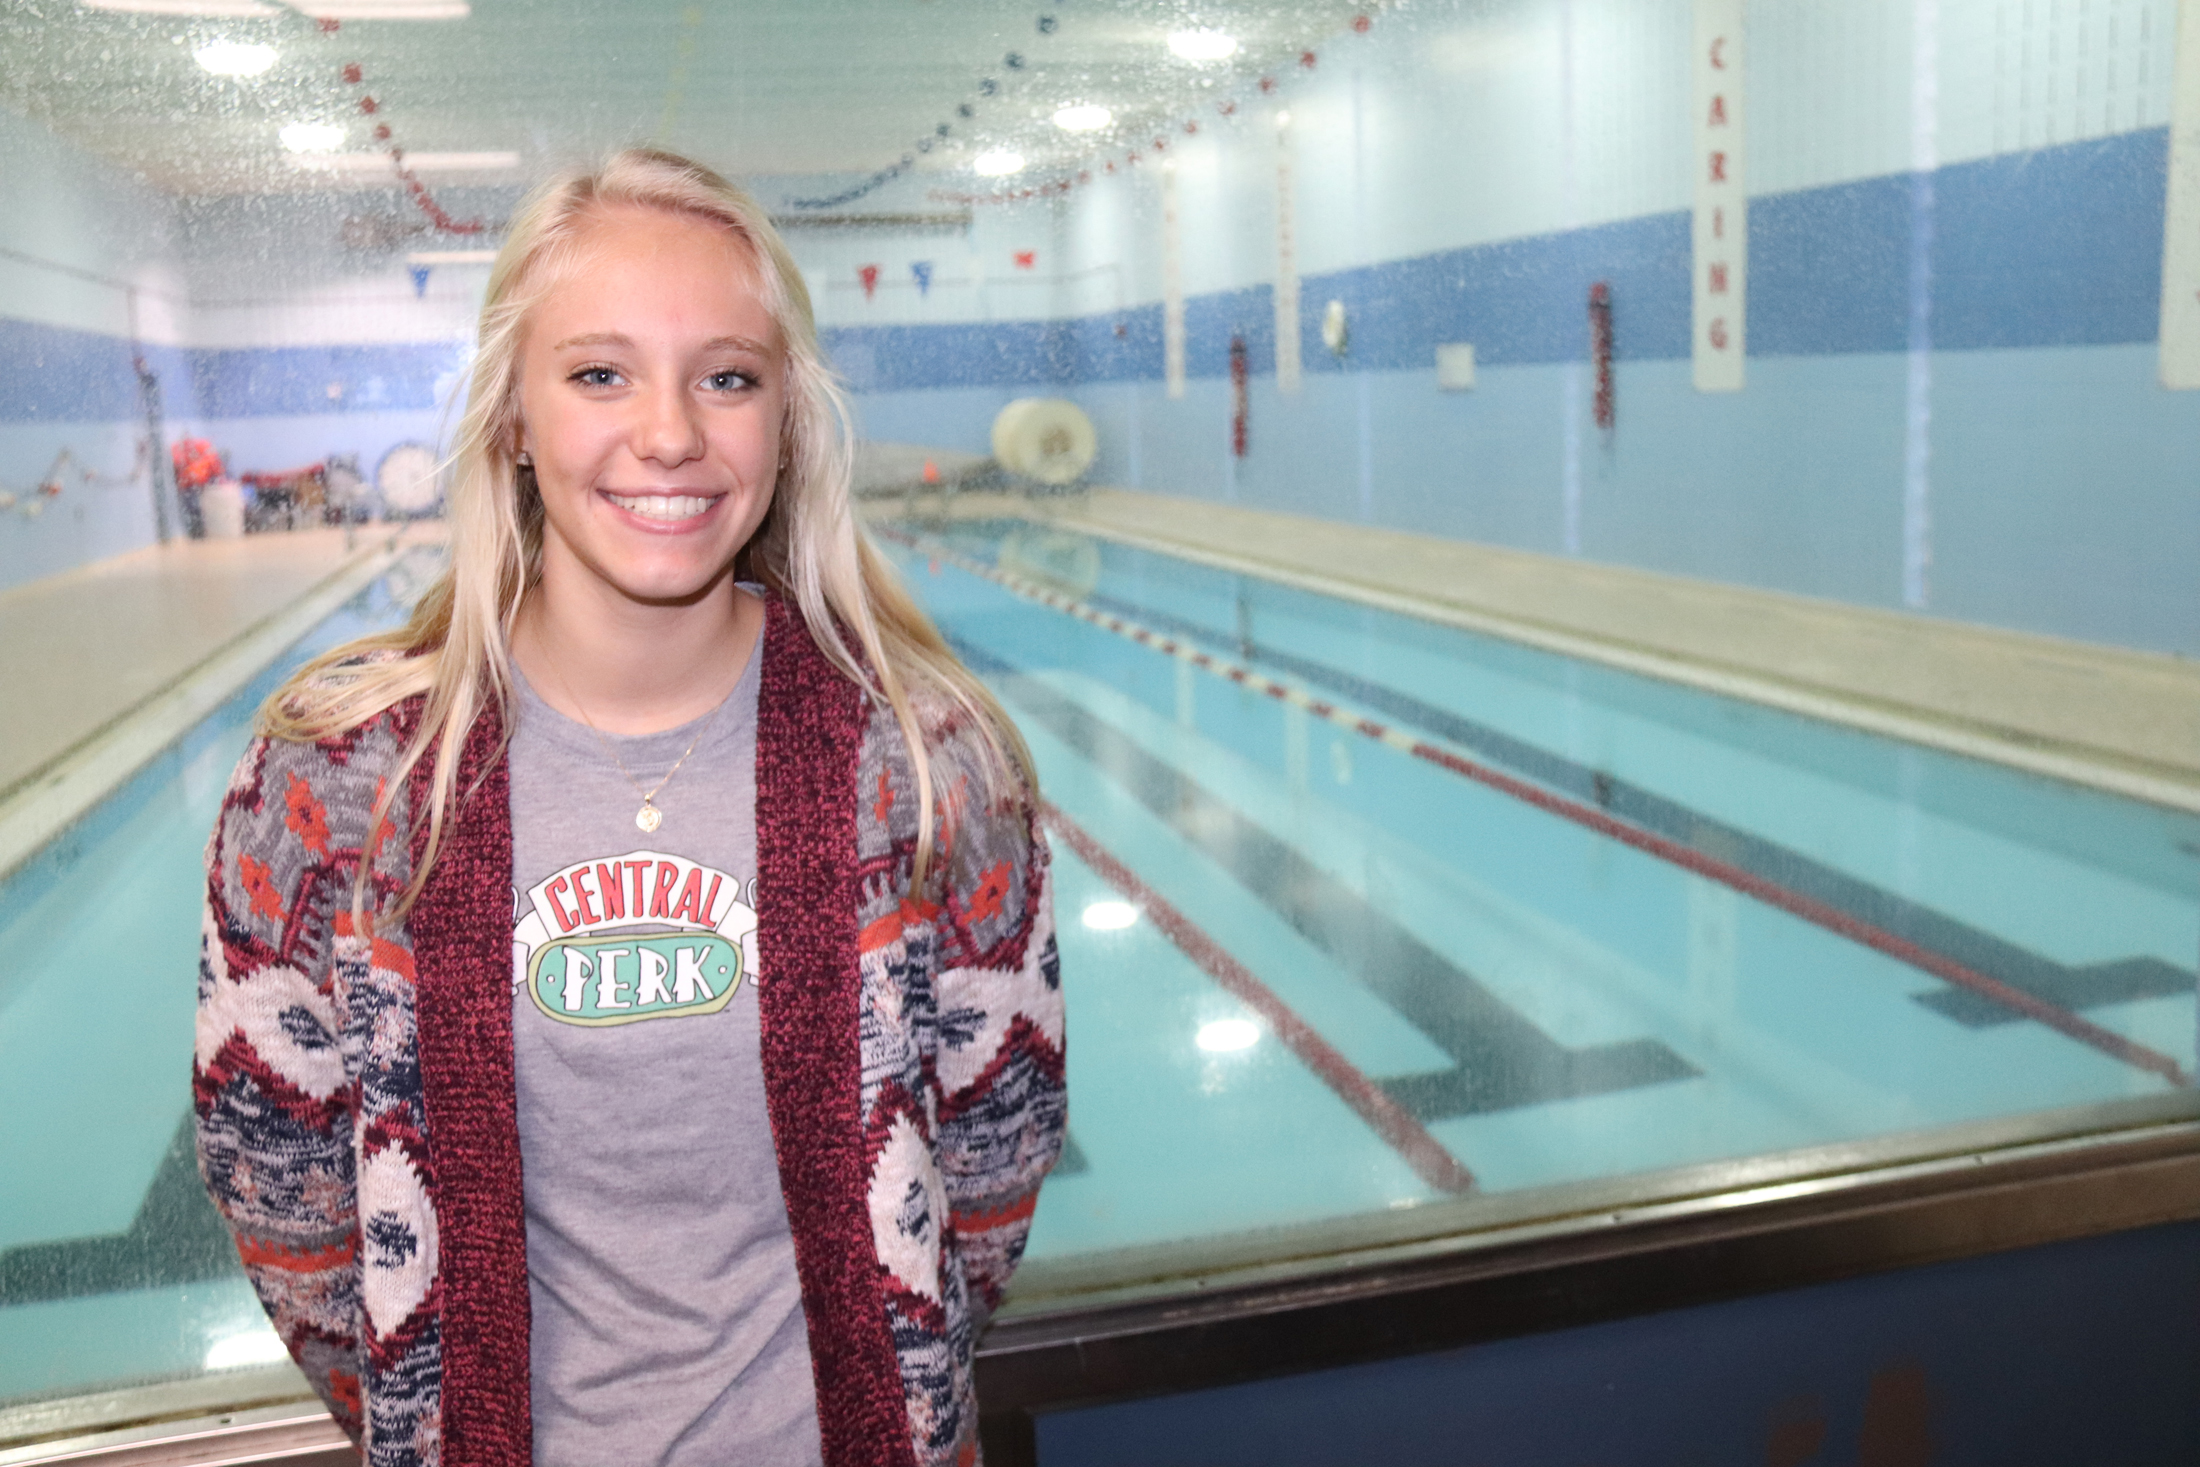 Charles City's Nia Litterer qualifies in 4 state meet events while swimming for Mason City